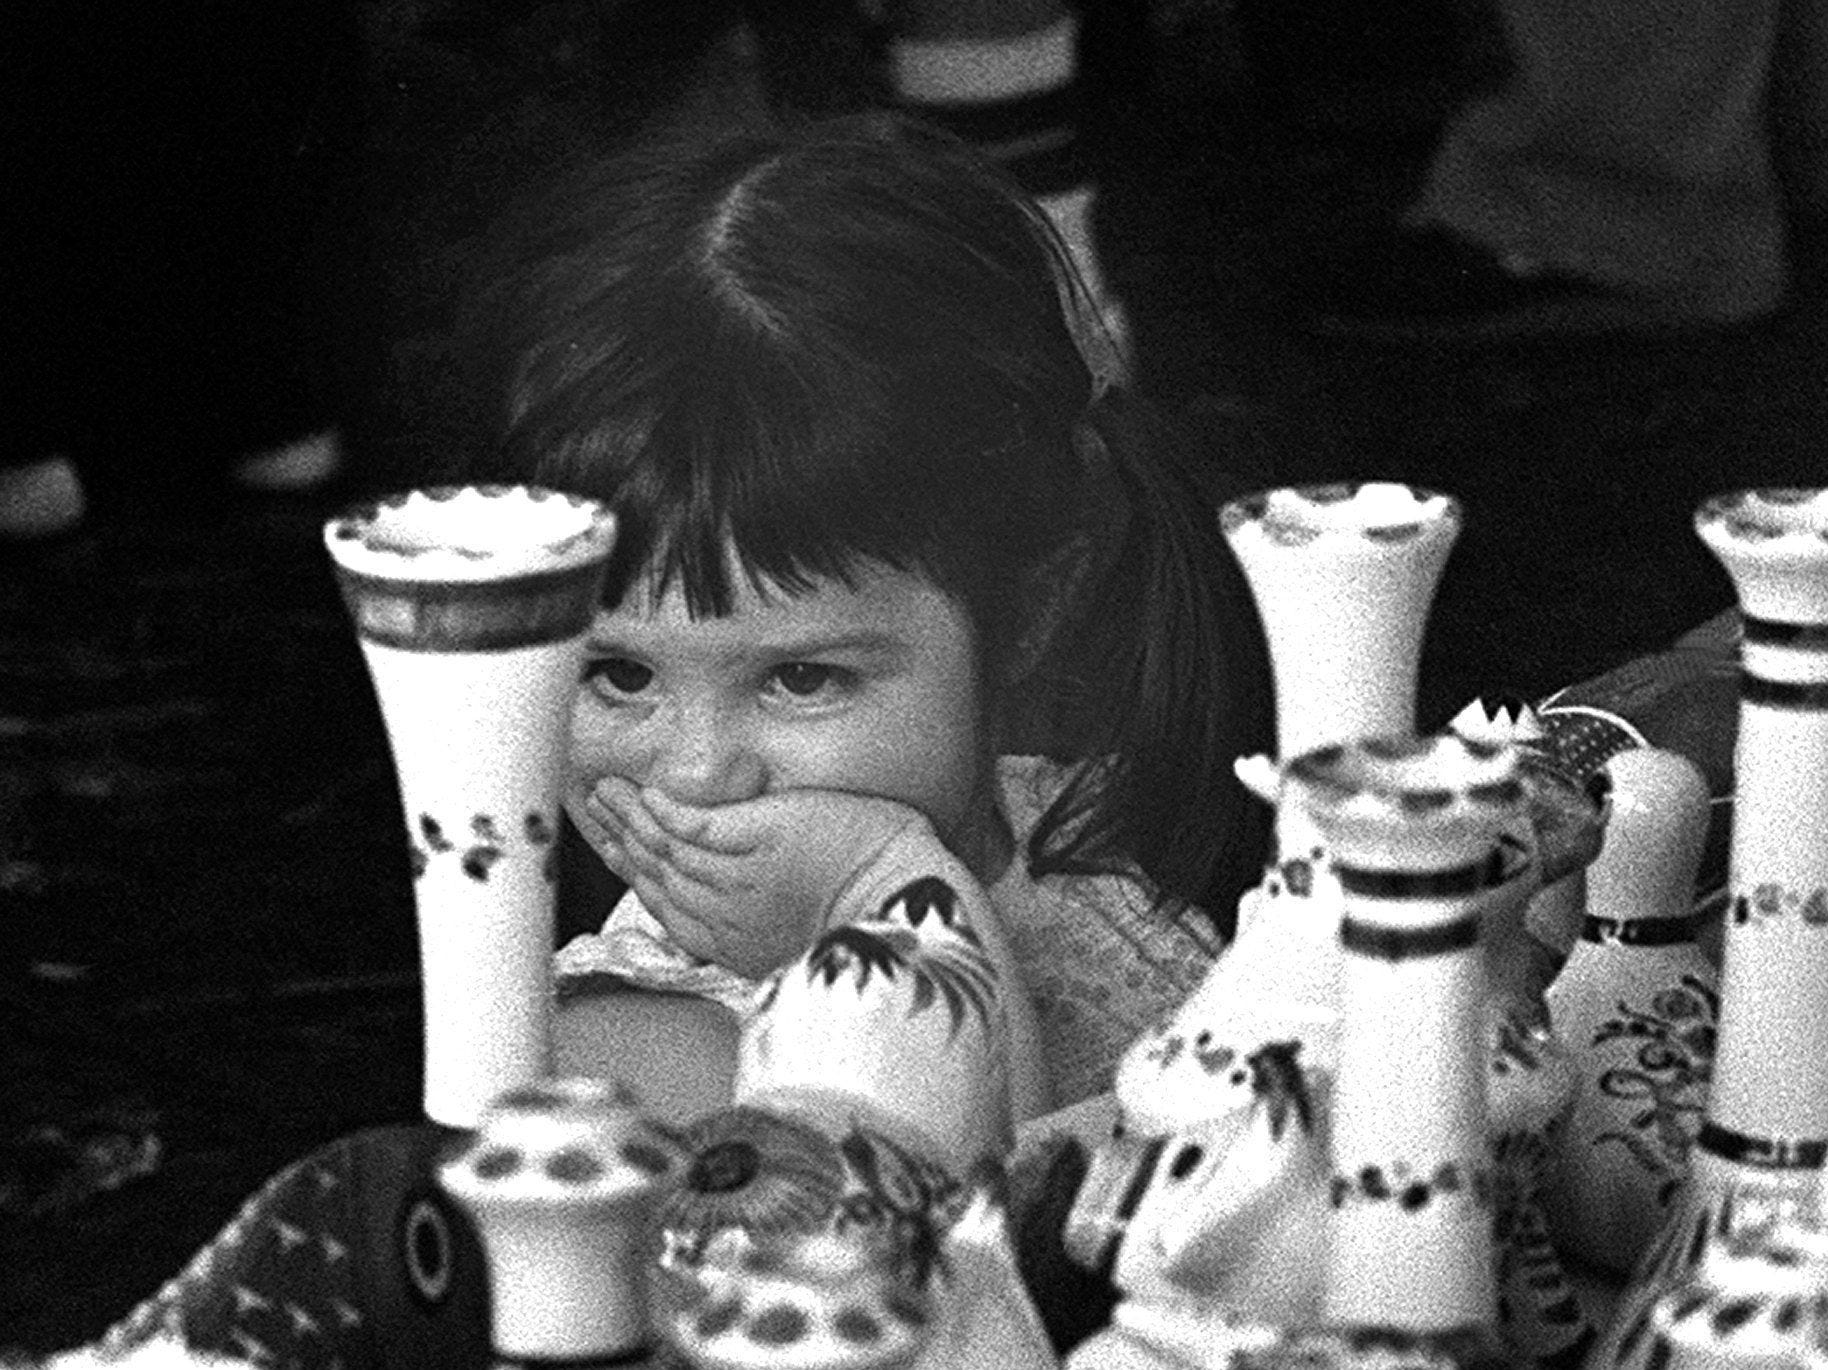 Two-year-old Julia Shaffer shops for pottery at Tom Lee Park during the Memphis in May Fiesta Mexicana on 6 May 1984. She appraised the objects, then tentatively decided to have her father, Frank Shaffer, buy her the figure of a dog.